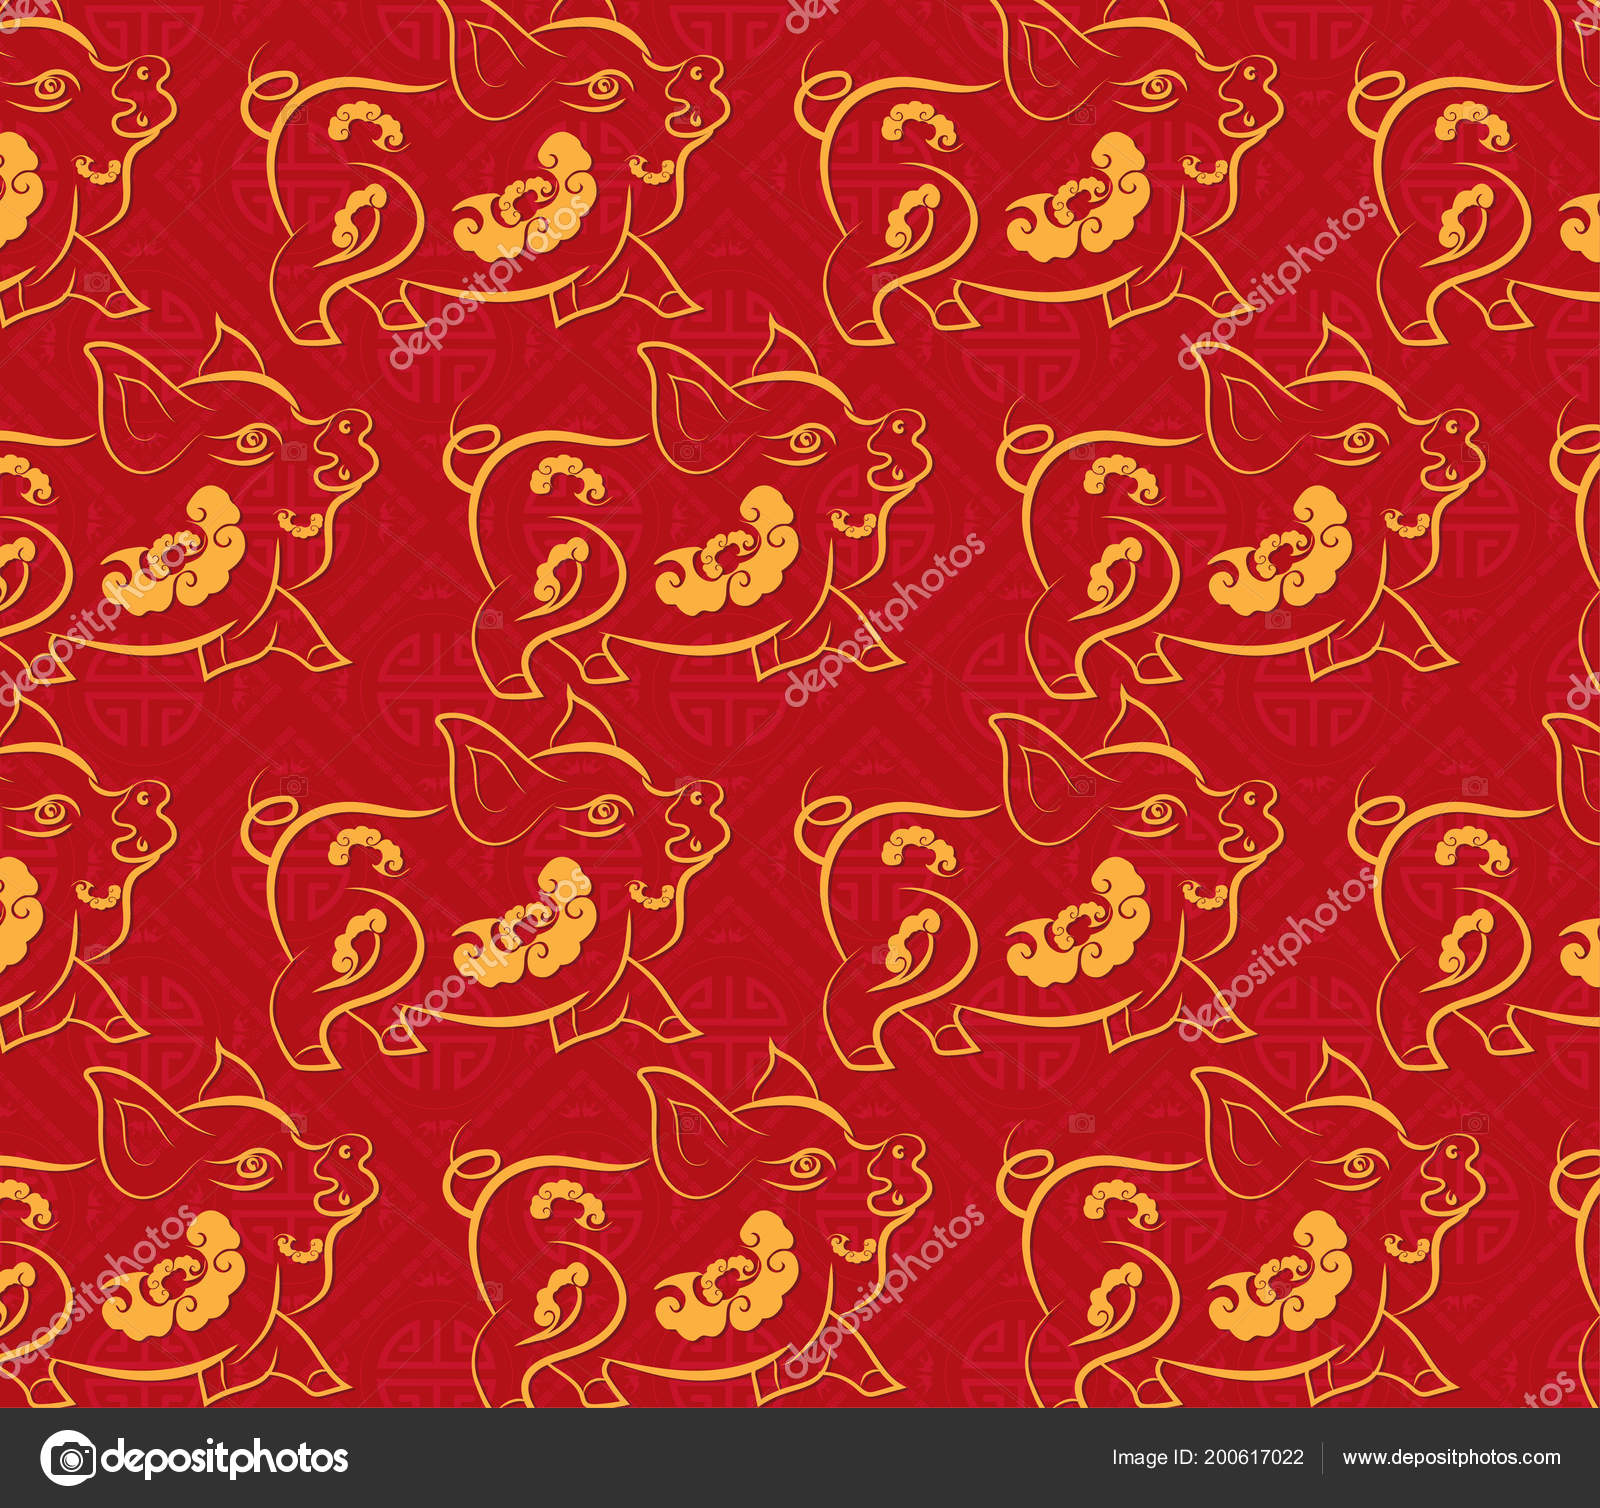 Chinese new year pattern background year pig stock illustration